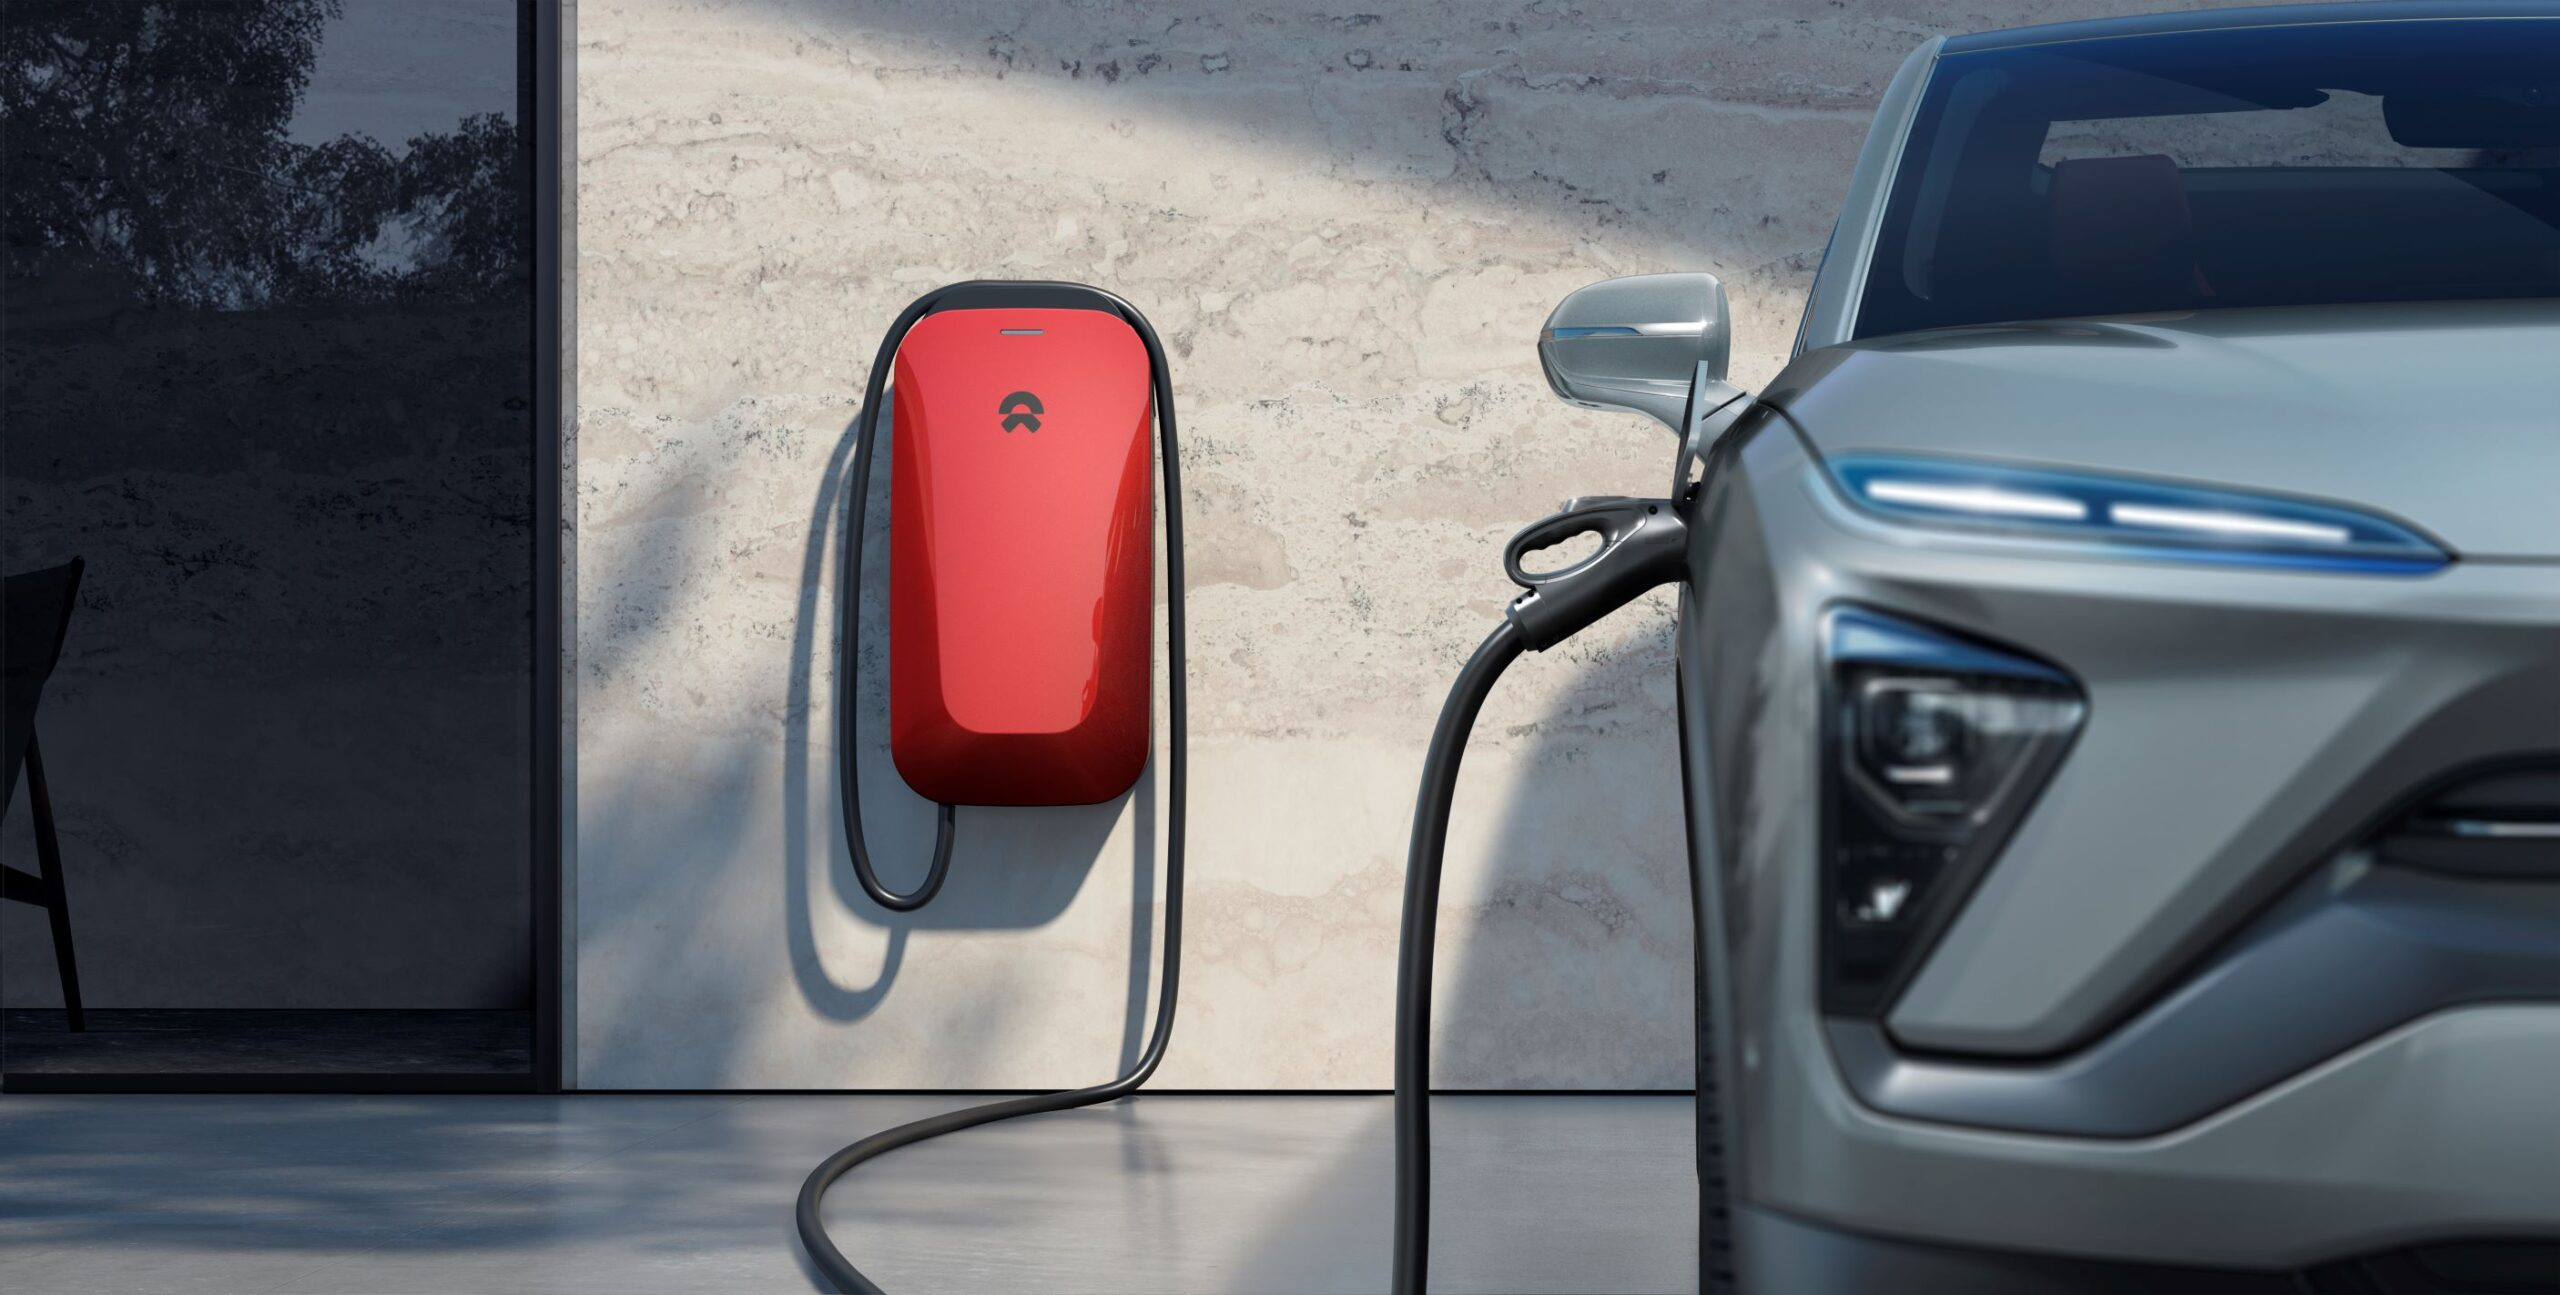 20200713_2091_NIO_POWER_Charger_Shot_Wide_Rev_E_CLIENT_FILE_editLI_02_Grey_Car_Red_Charger_small-1